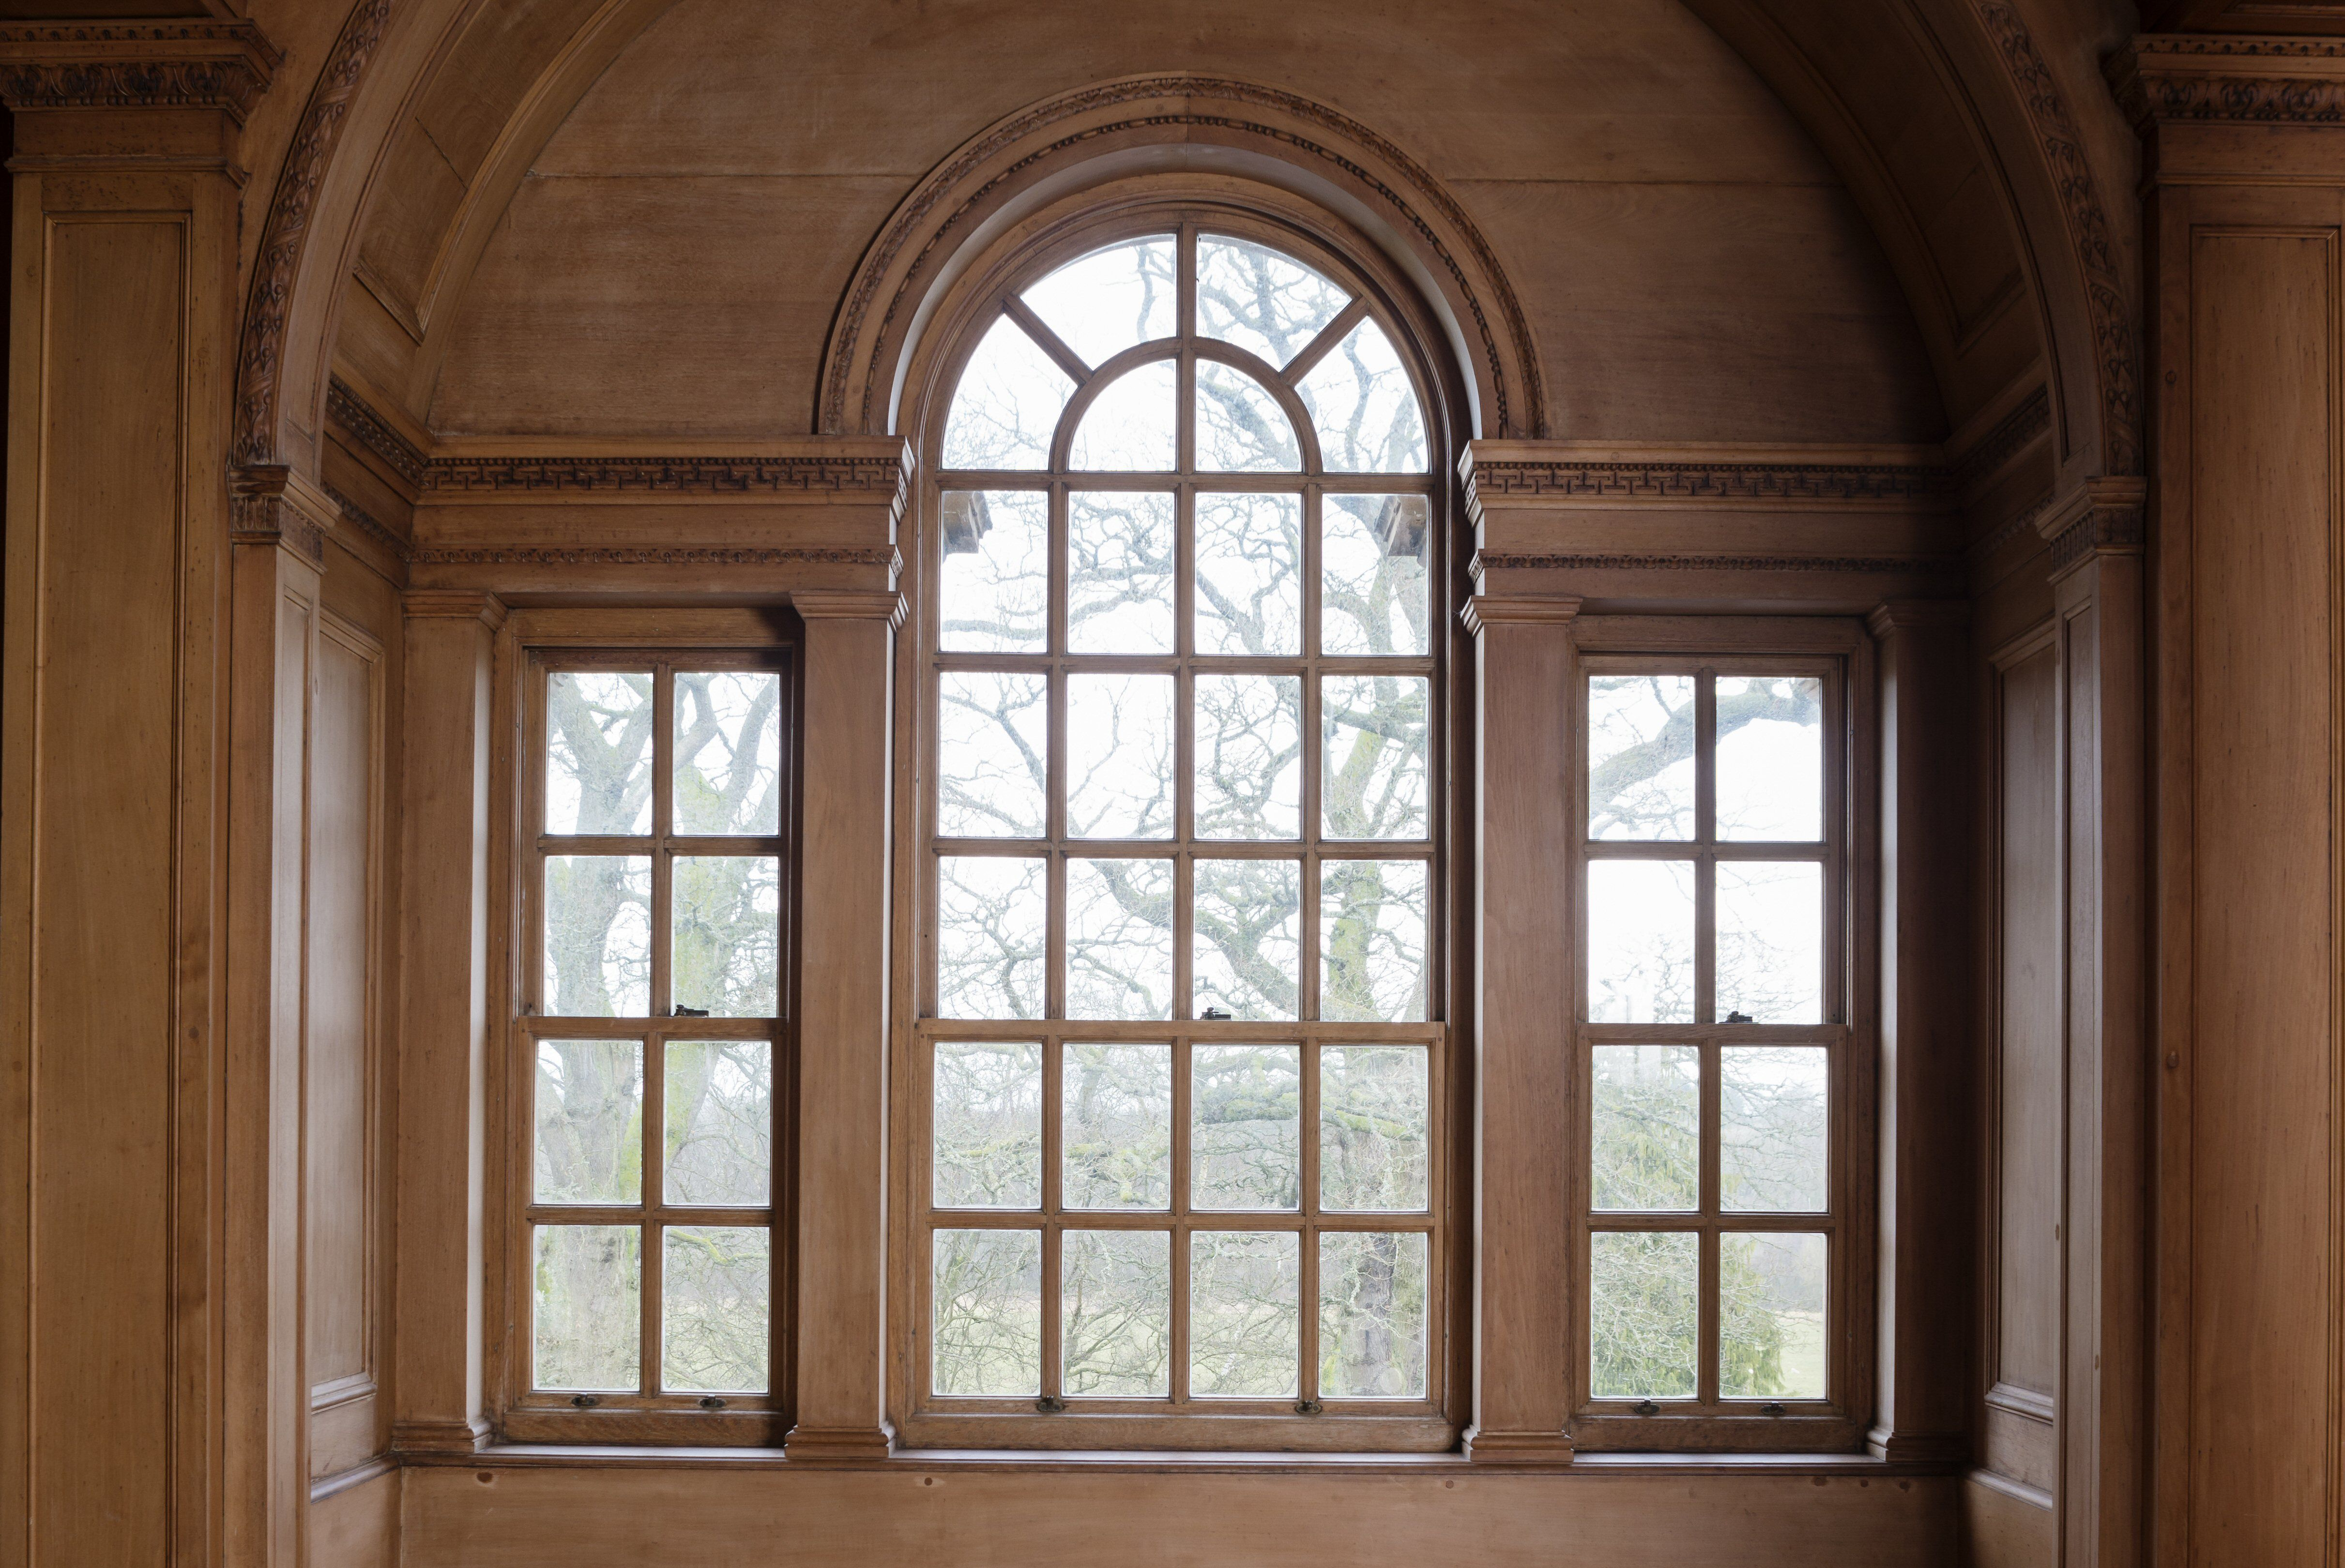 Japanese Themed Decor The History Of The Palladian Window